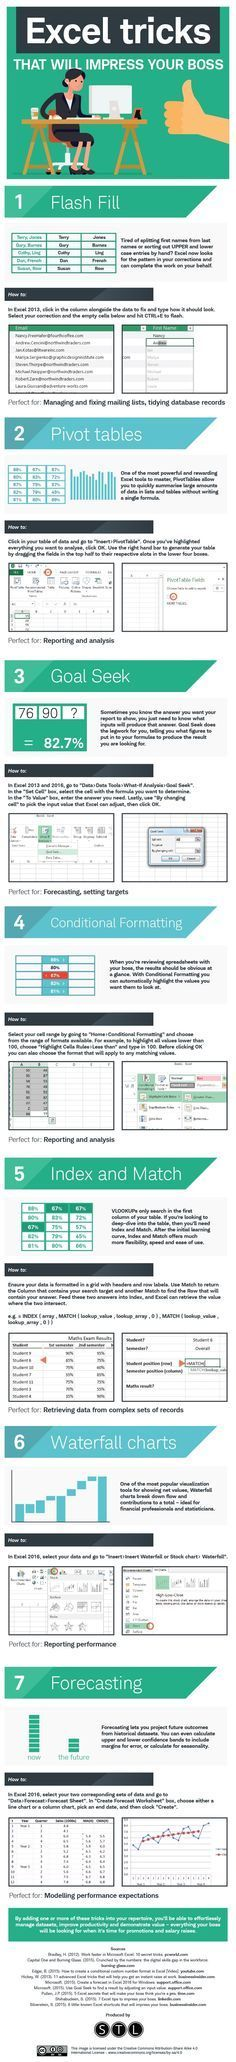 Free Excel Bookkeeping Templates Template, Business and Free - accounting forms in excel